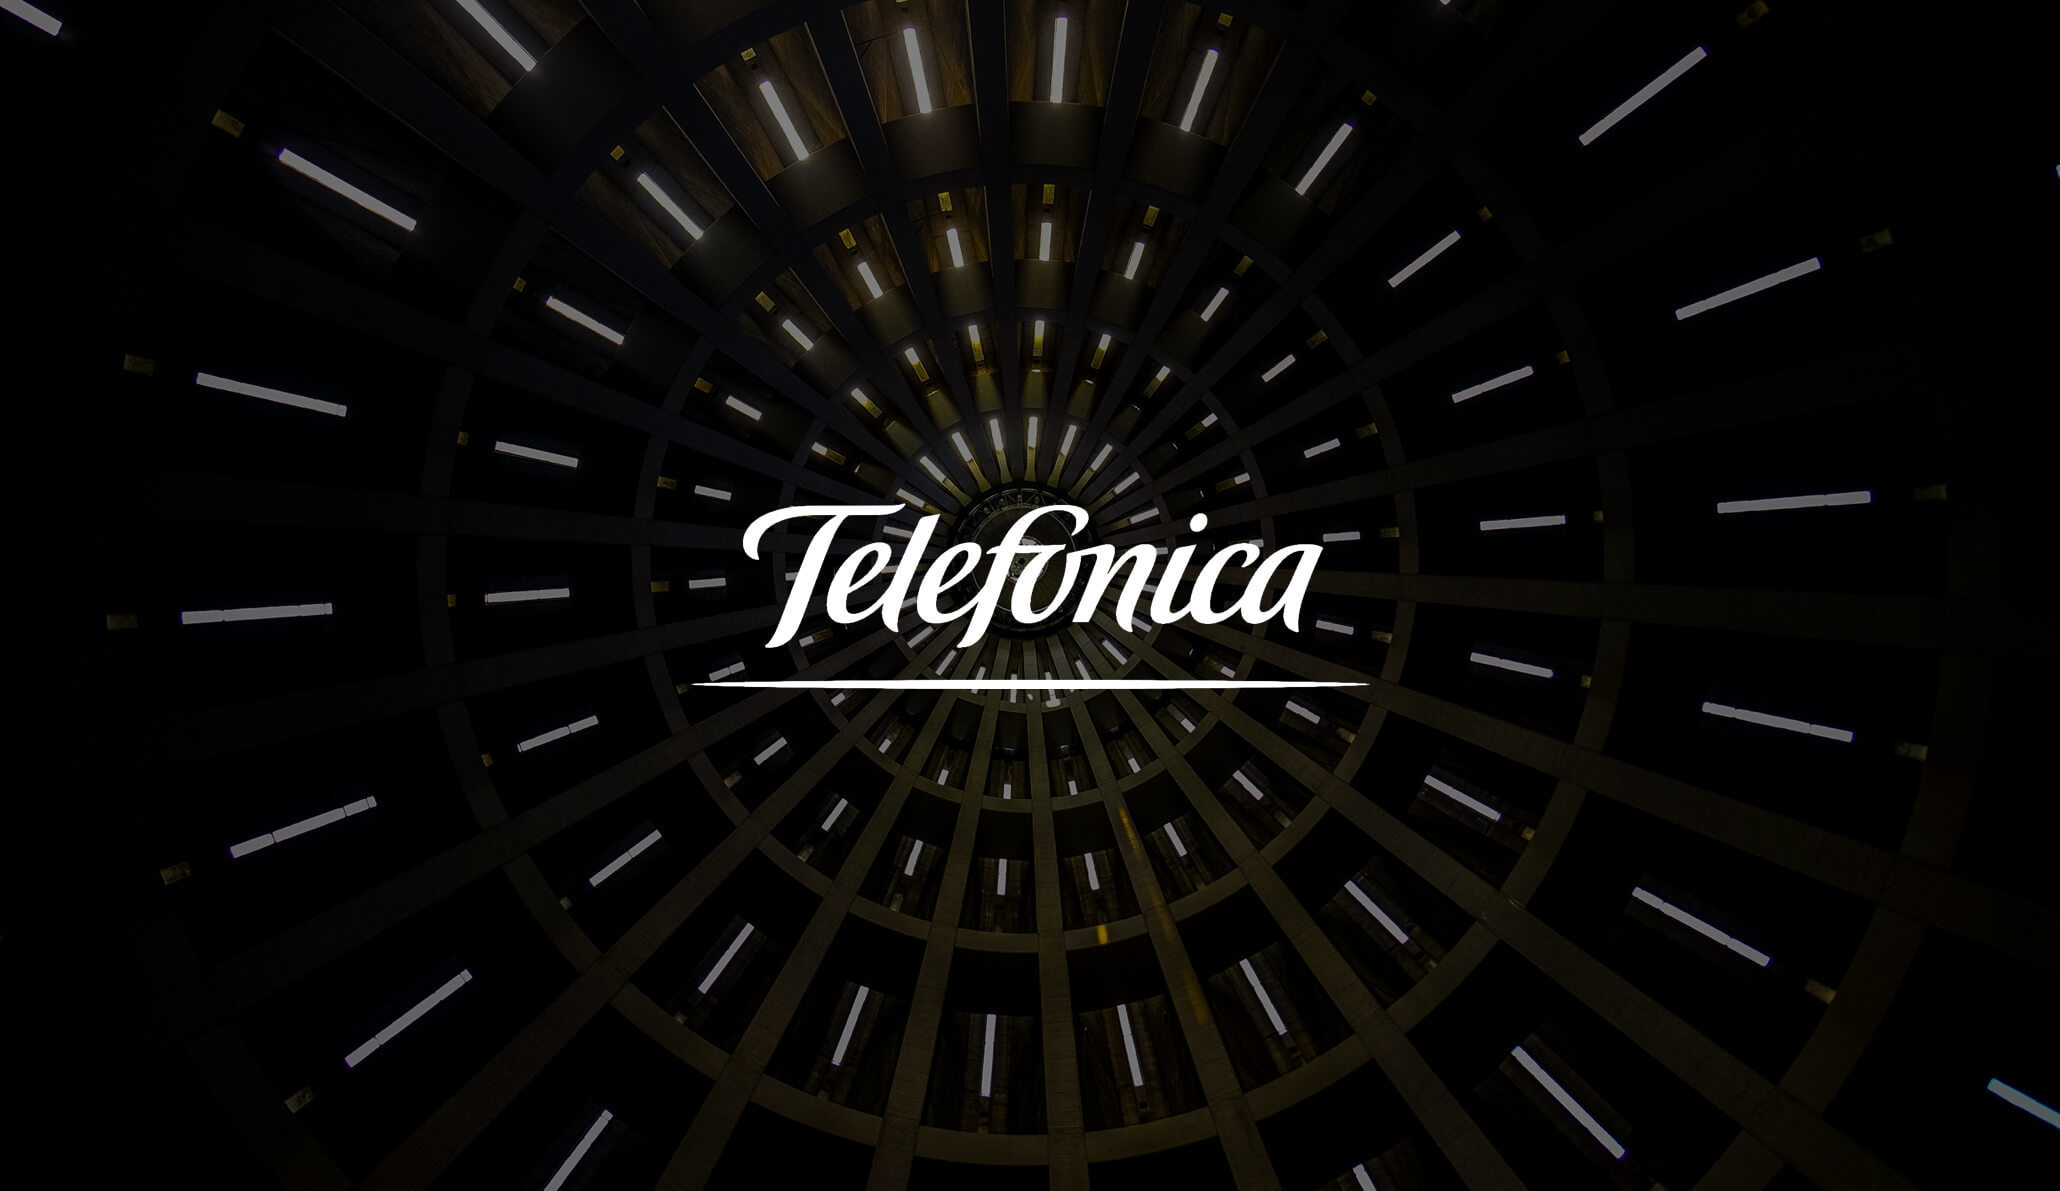 Telefonica logo on a black background